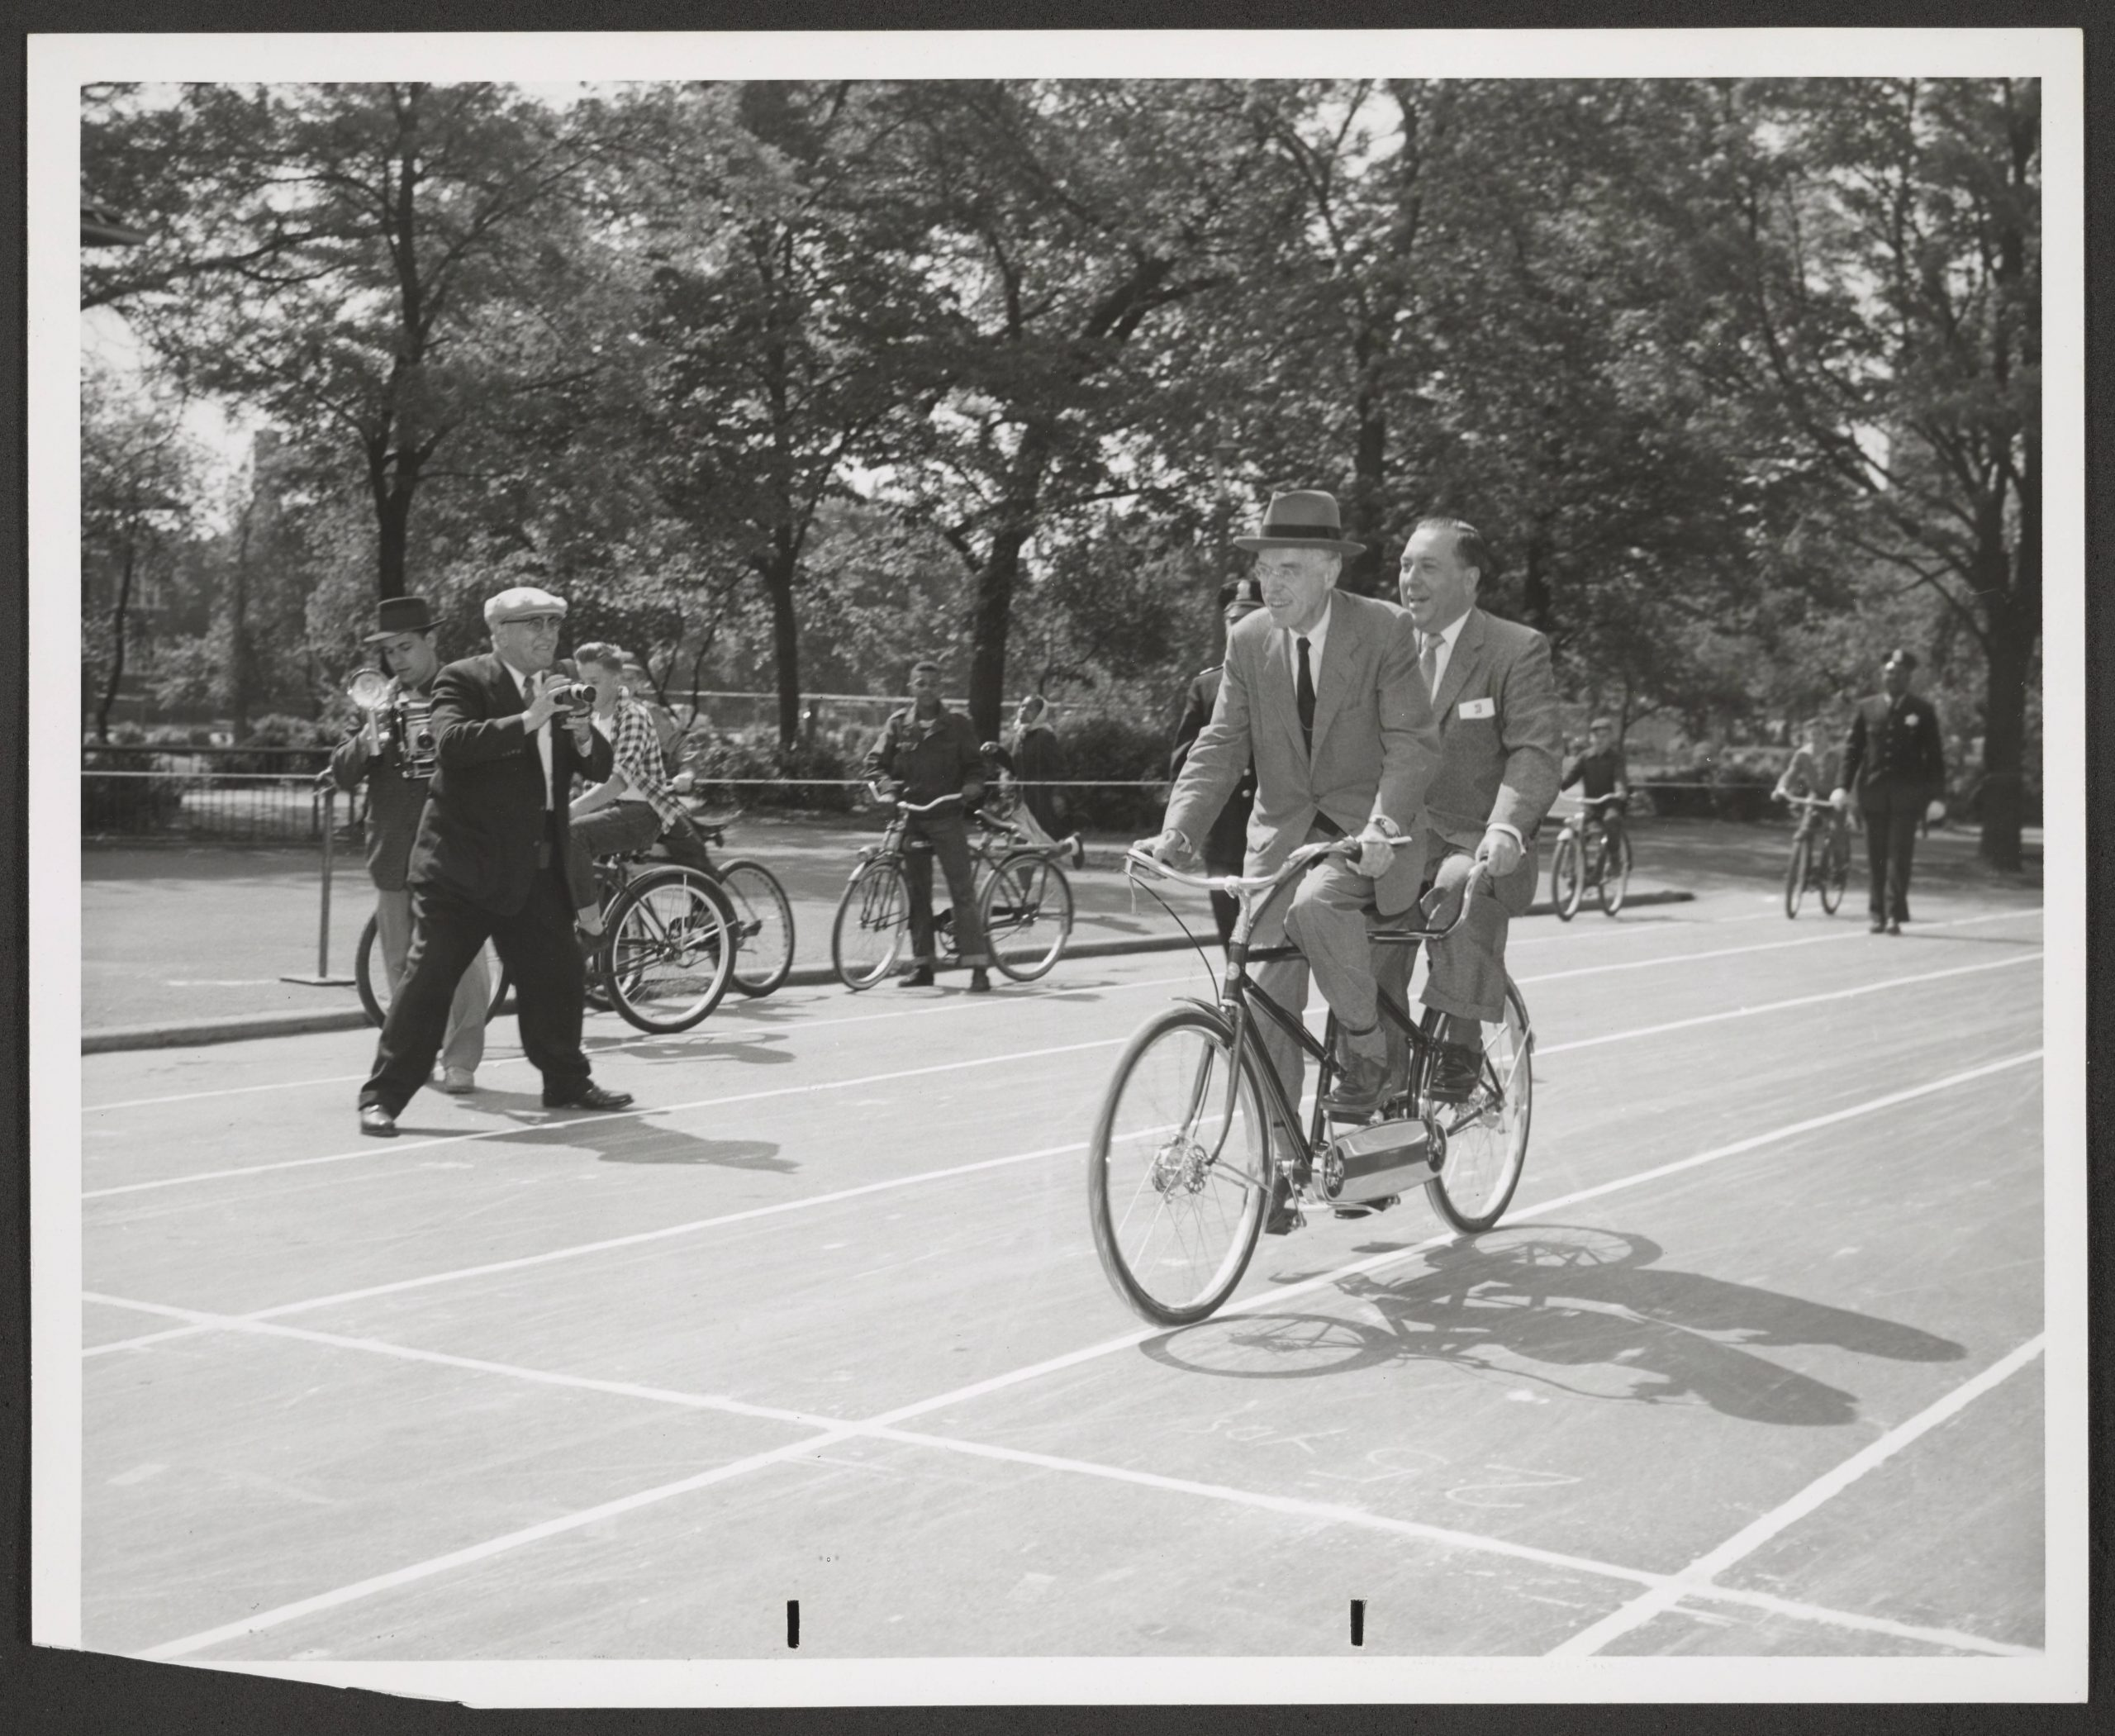 2 men in suits on tandem bike as photographer takes photos